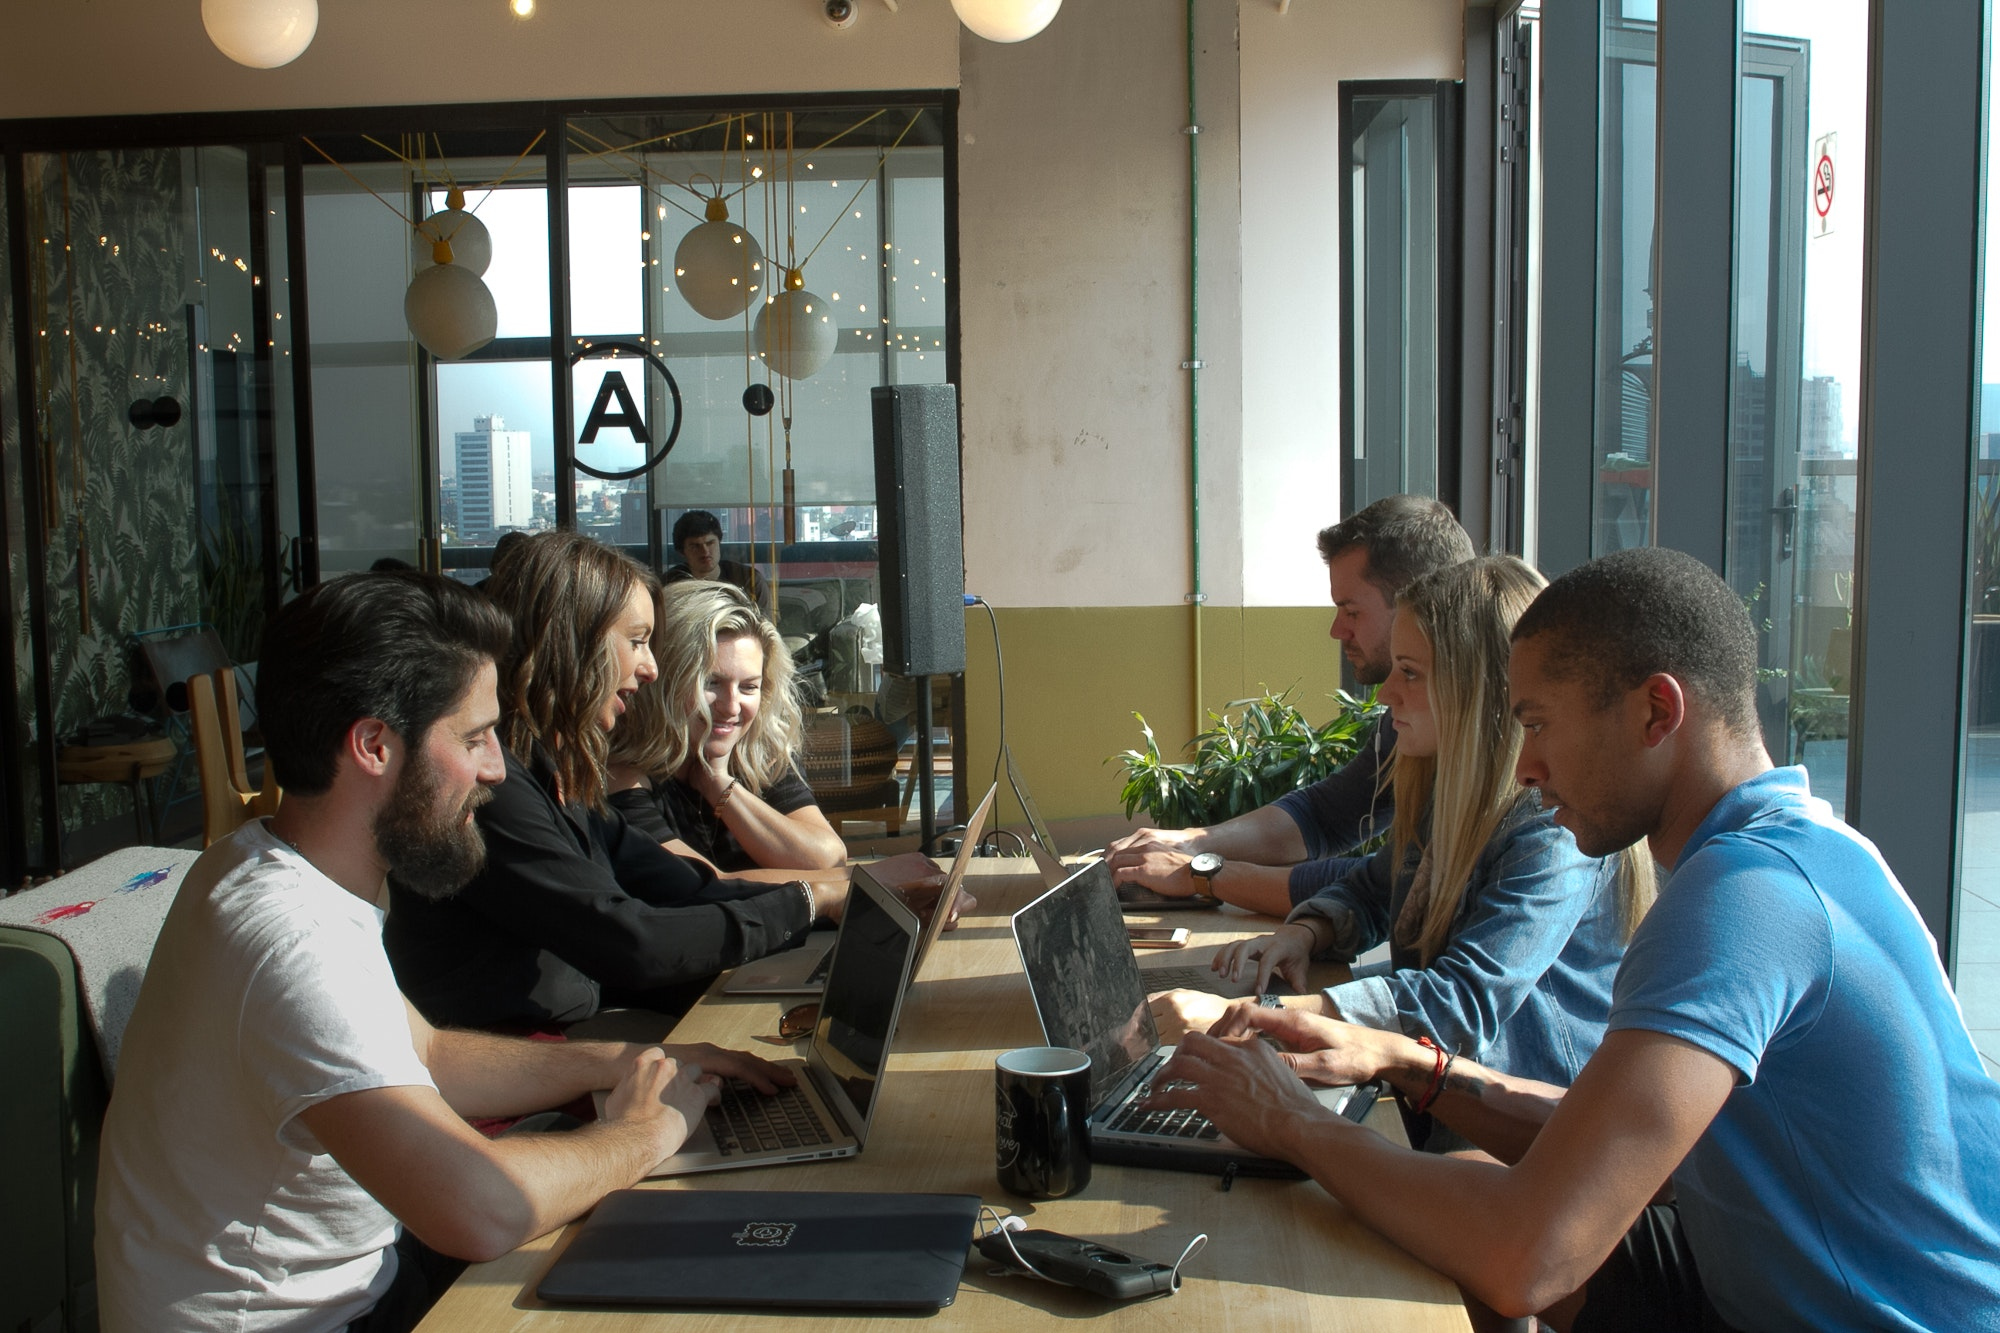 Coworking spaces don't just provide reliable internet—they're also great places to make other types of connections.